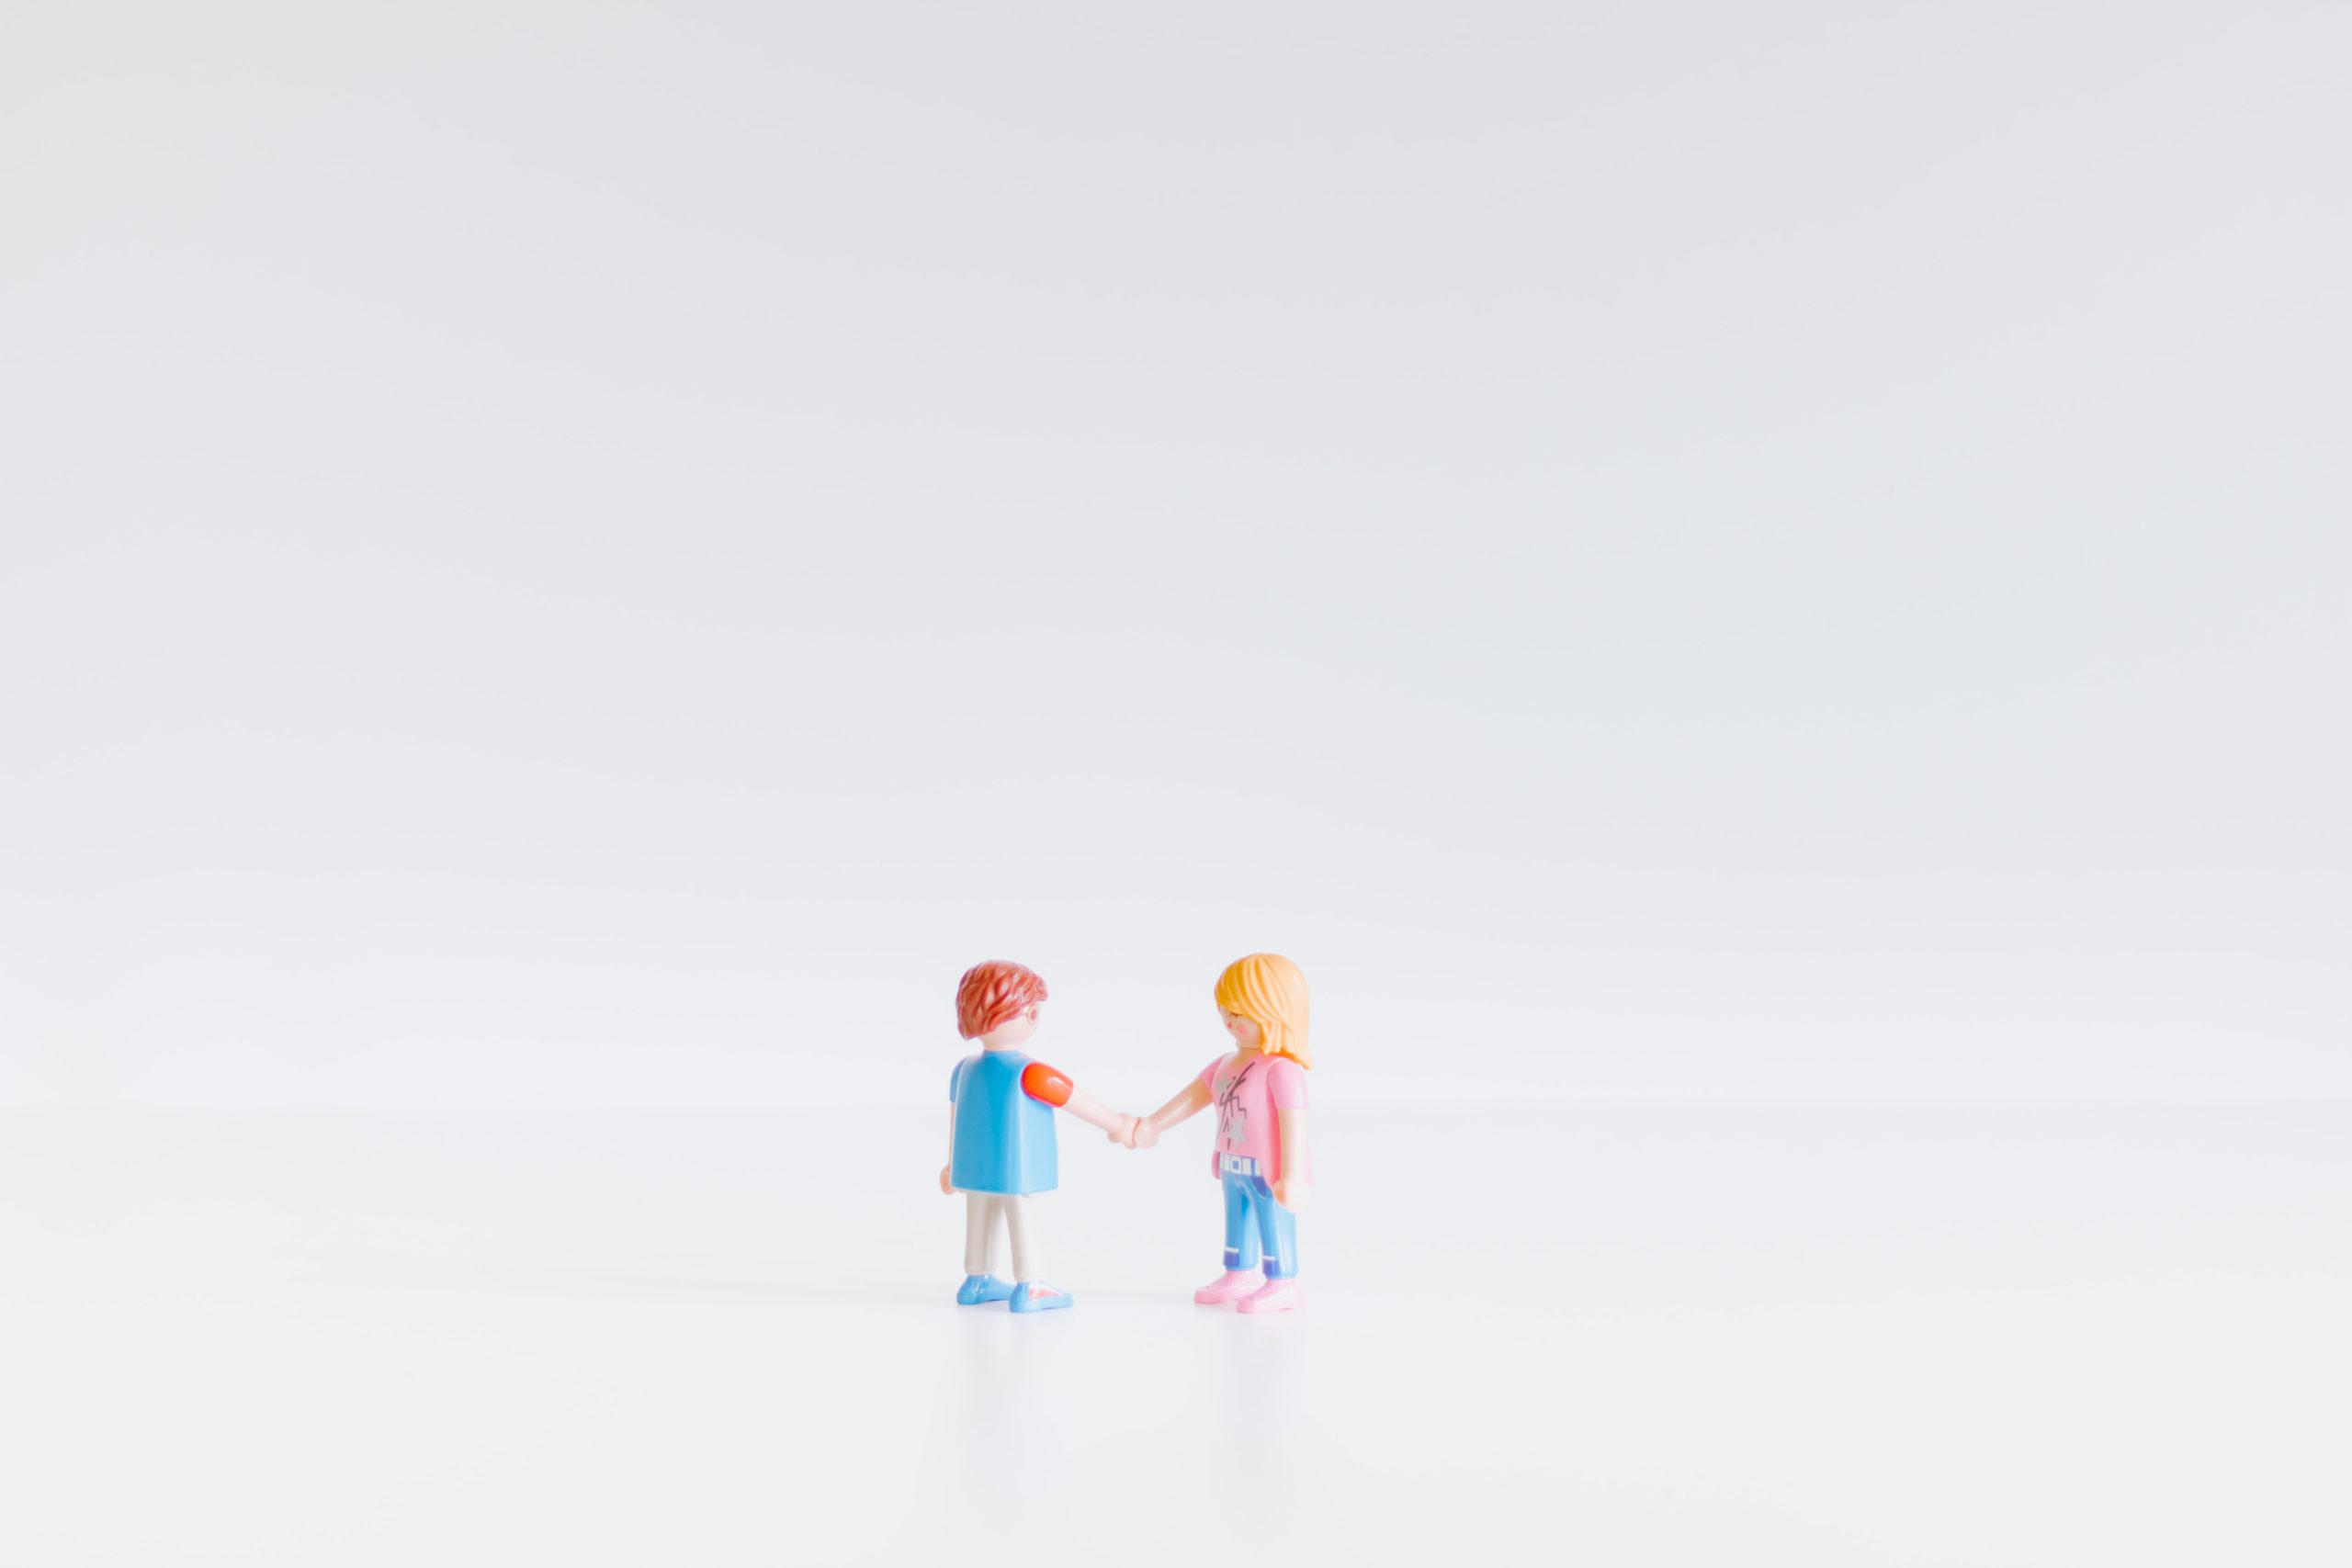 Two Lego dolls holding hands